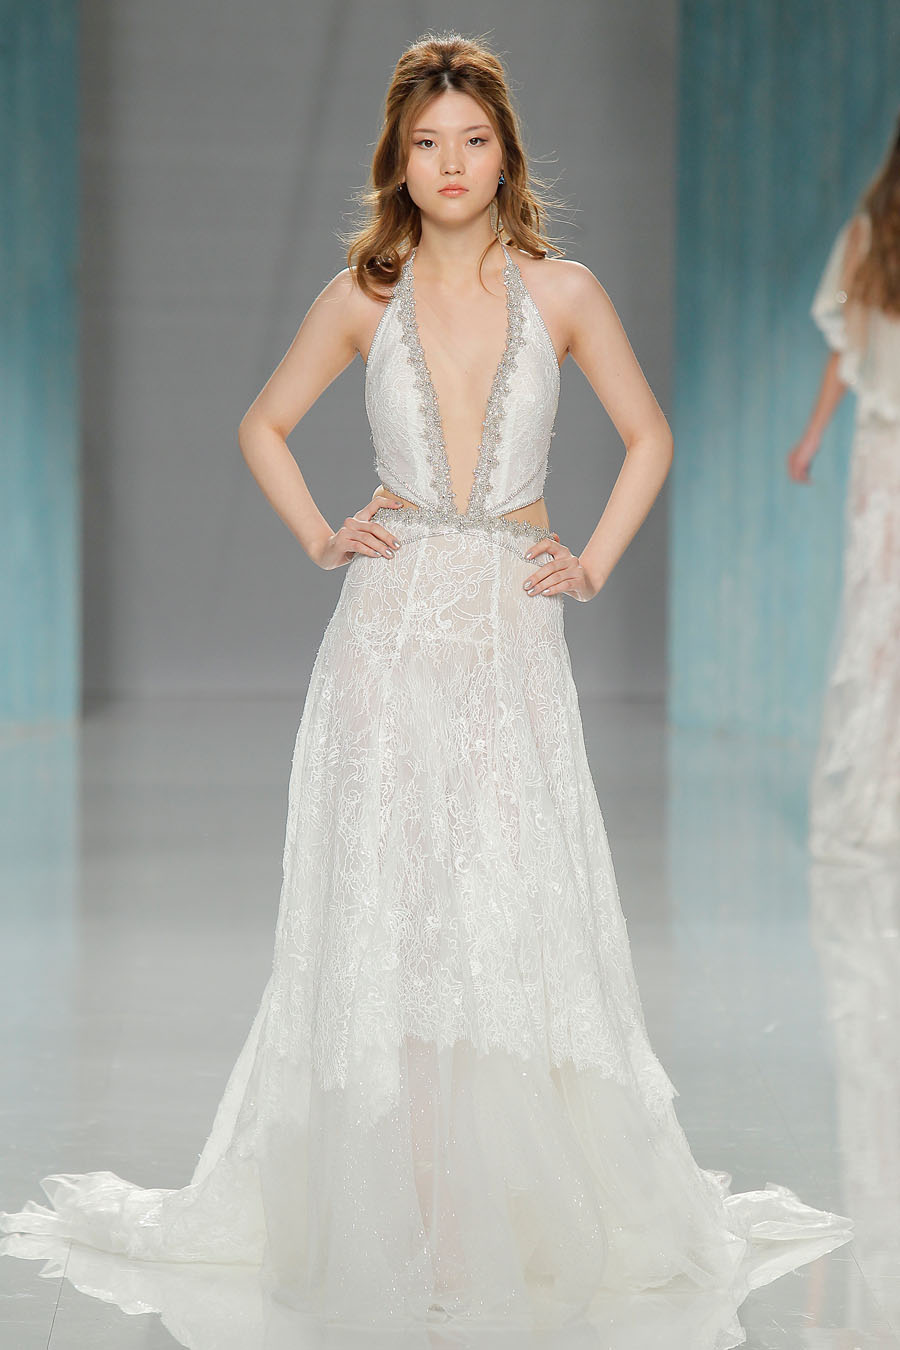 GALA Bridal Gown Collection - 908